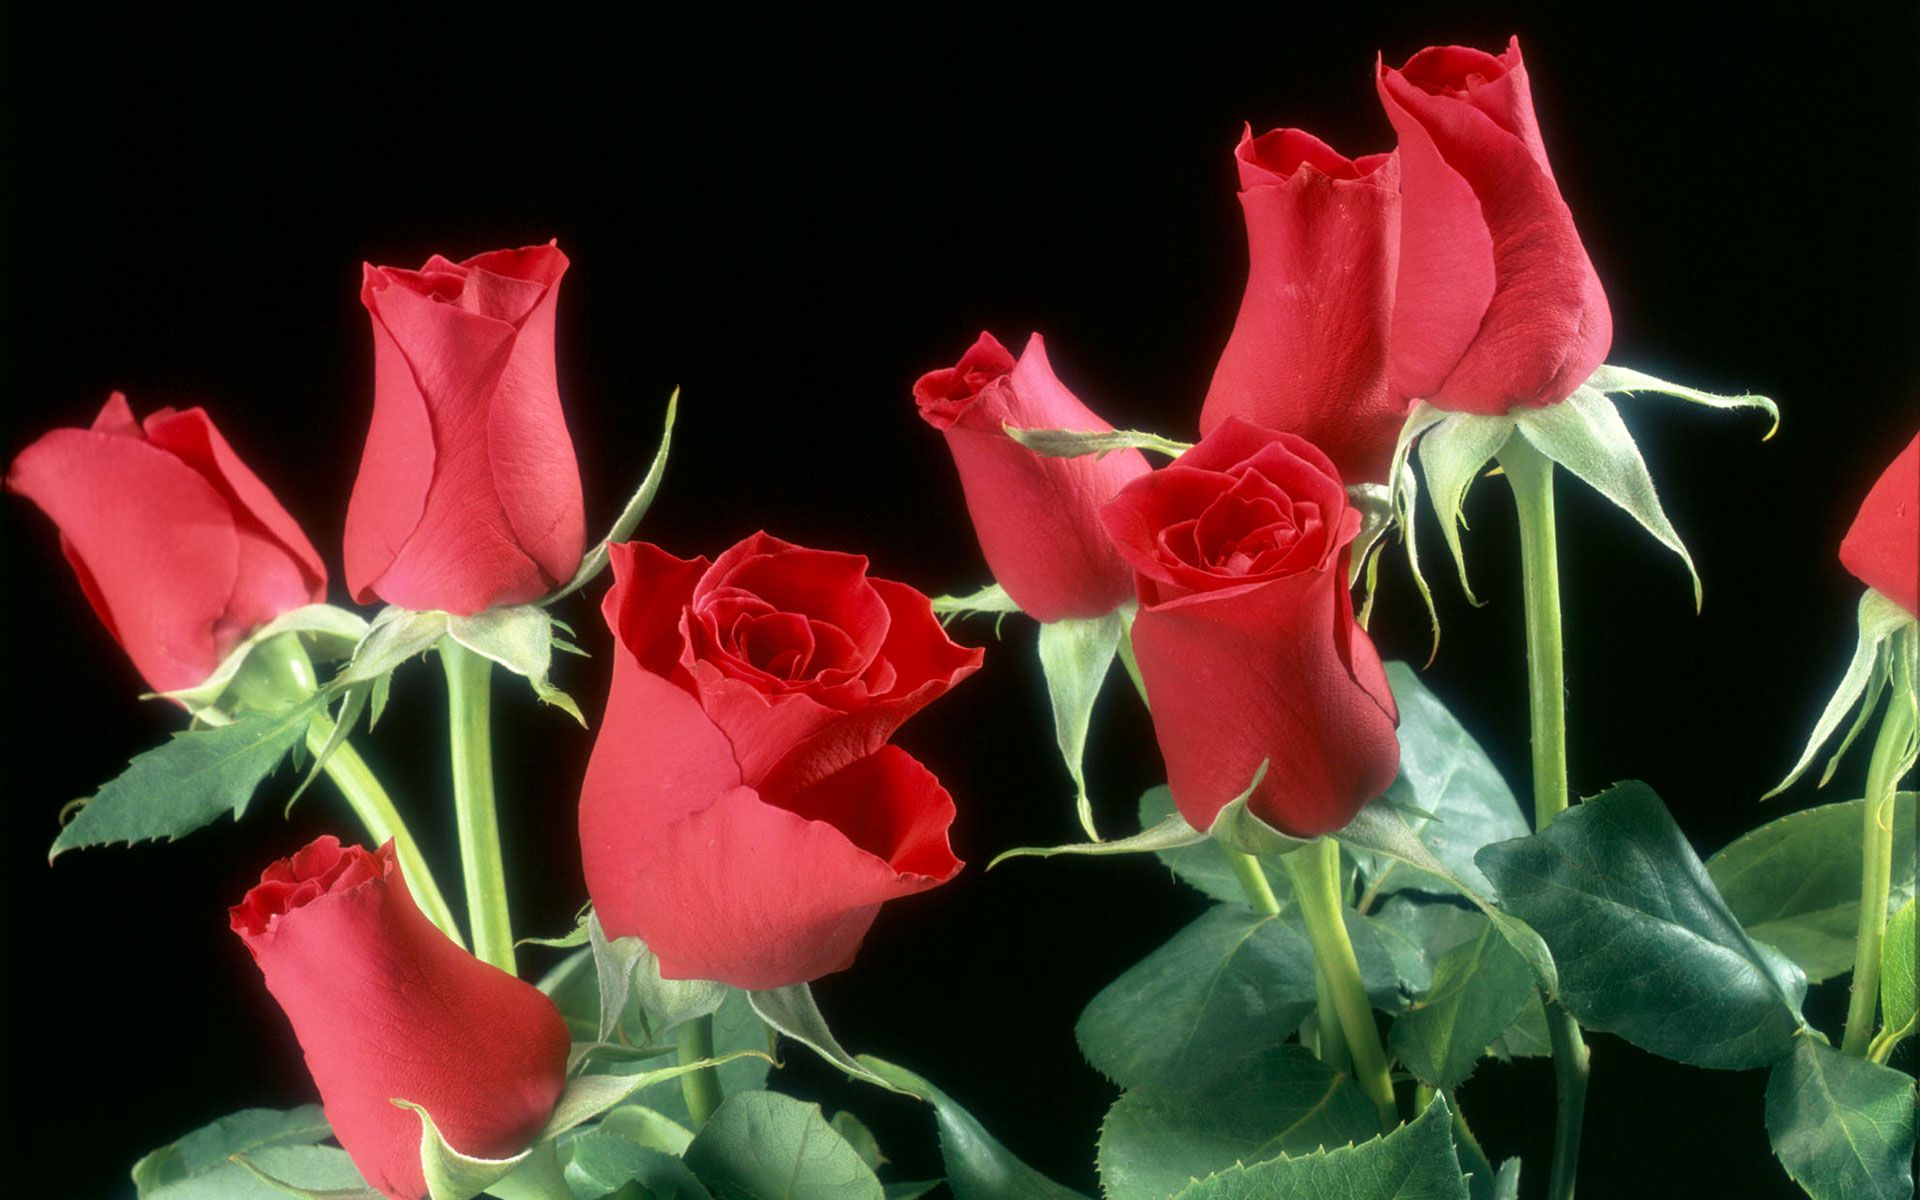 Pink And Red Designs Background With Roses | Red Roses Flowers HD ...